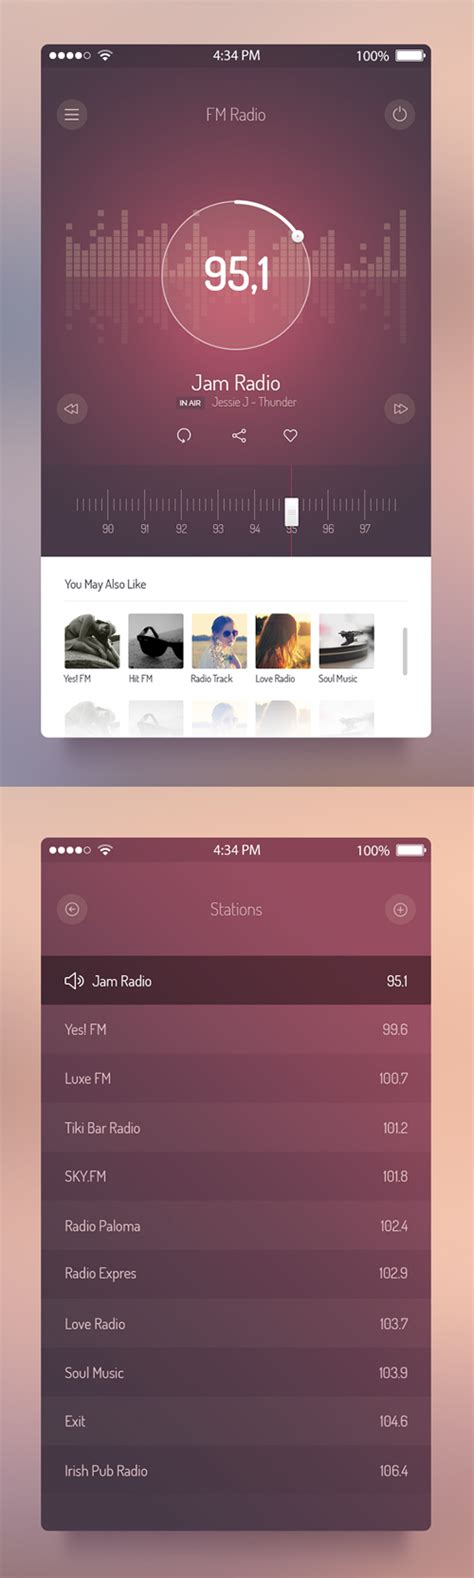 design mobile app ui 50 mobile app ui design for inspiration inspiration